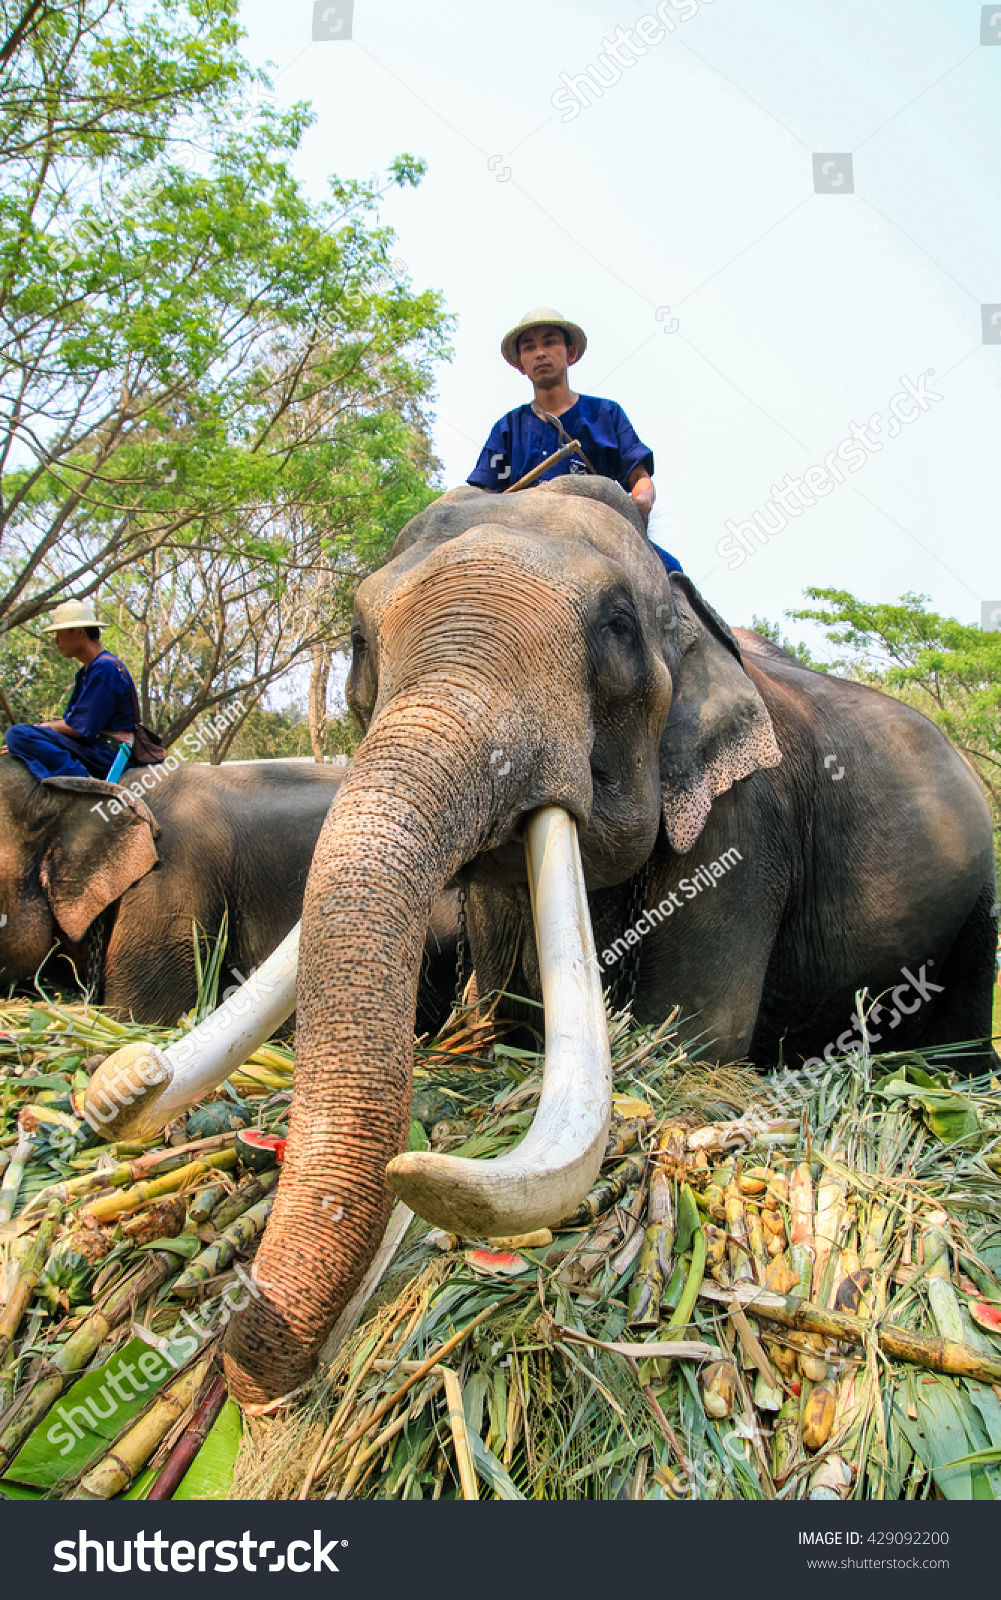 March 13: the day of the elephant in Thailand, the day of Pluto in the USA (Illinois). Holidays March 13 72